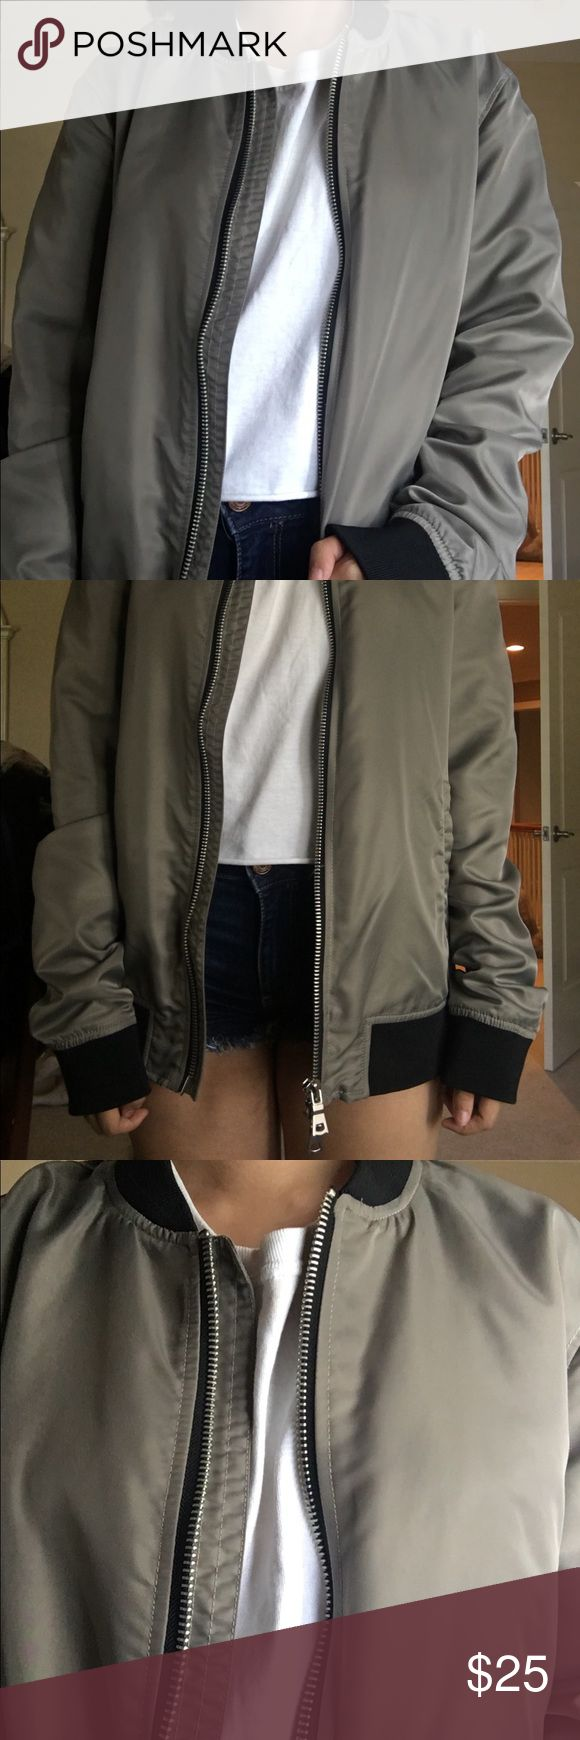 """Grey Bomber Jacket Only worn for the photo, aside from that never worn! In practically perfect condition, bought from the men's section in size medium to get a baggier fit. For reference I am 5'2"""". Not super warm, so wouldn't make you hot when you wear it. I can no longer find it on the f21 website. Forever 21 Jackets & Coats"""